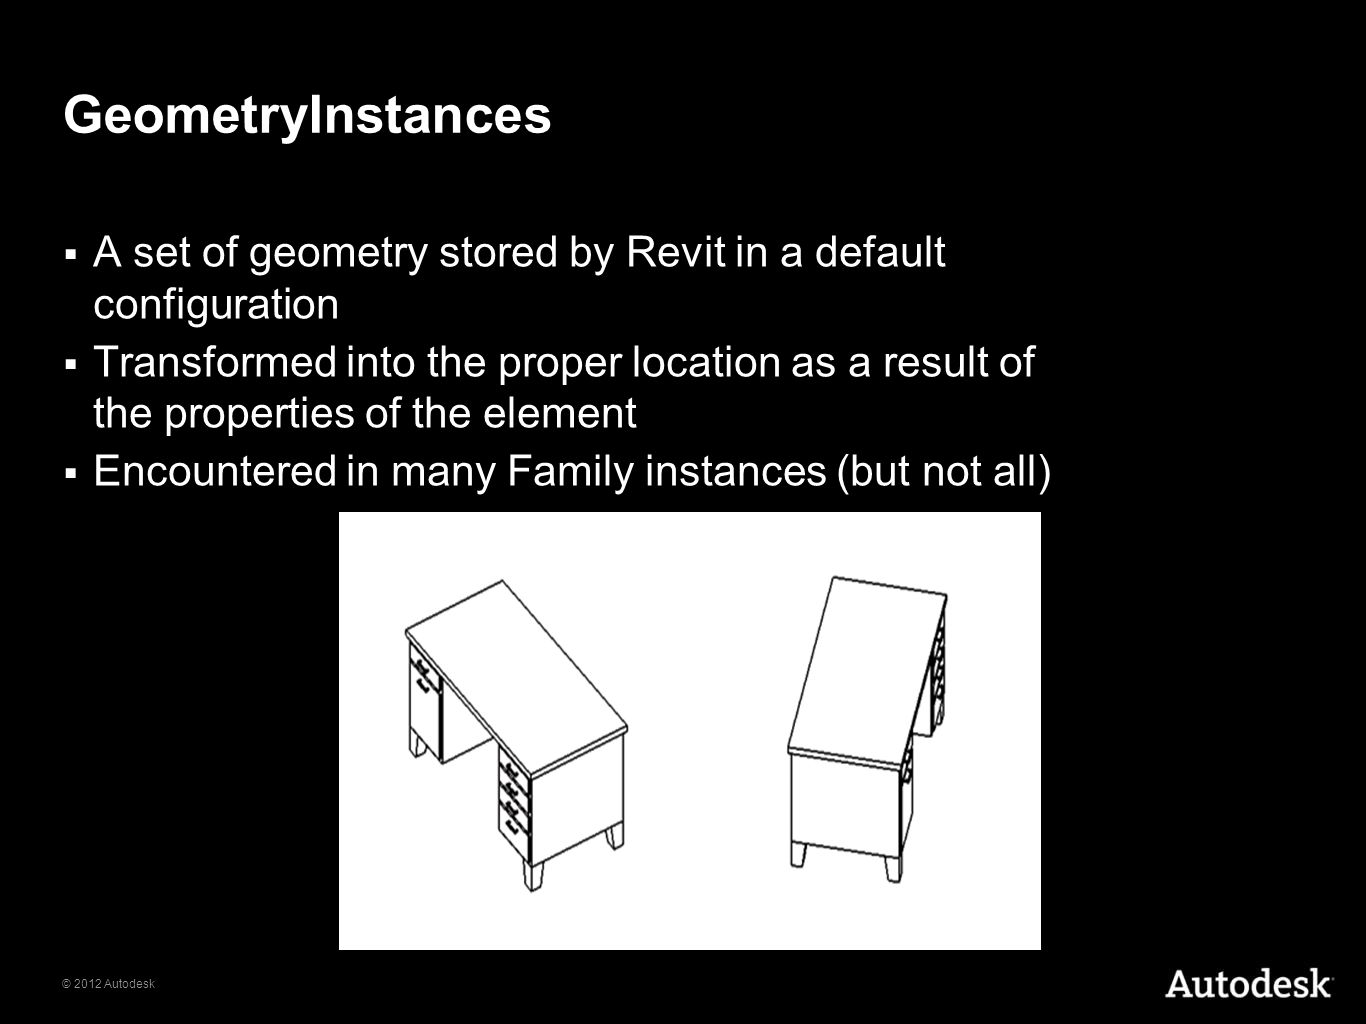 GeometryInstances A set of geometry stored by Revit in a default configuration.